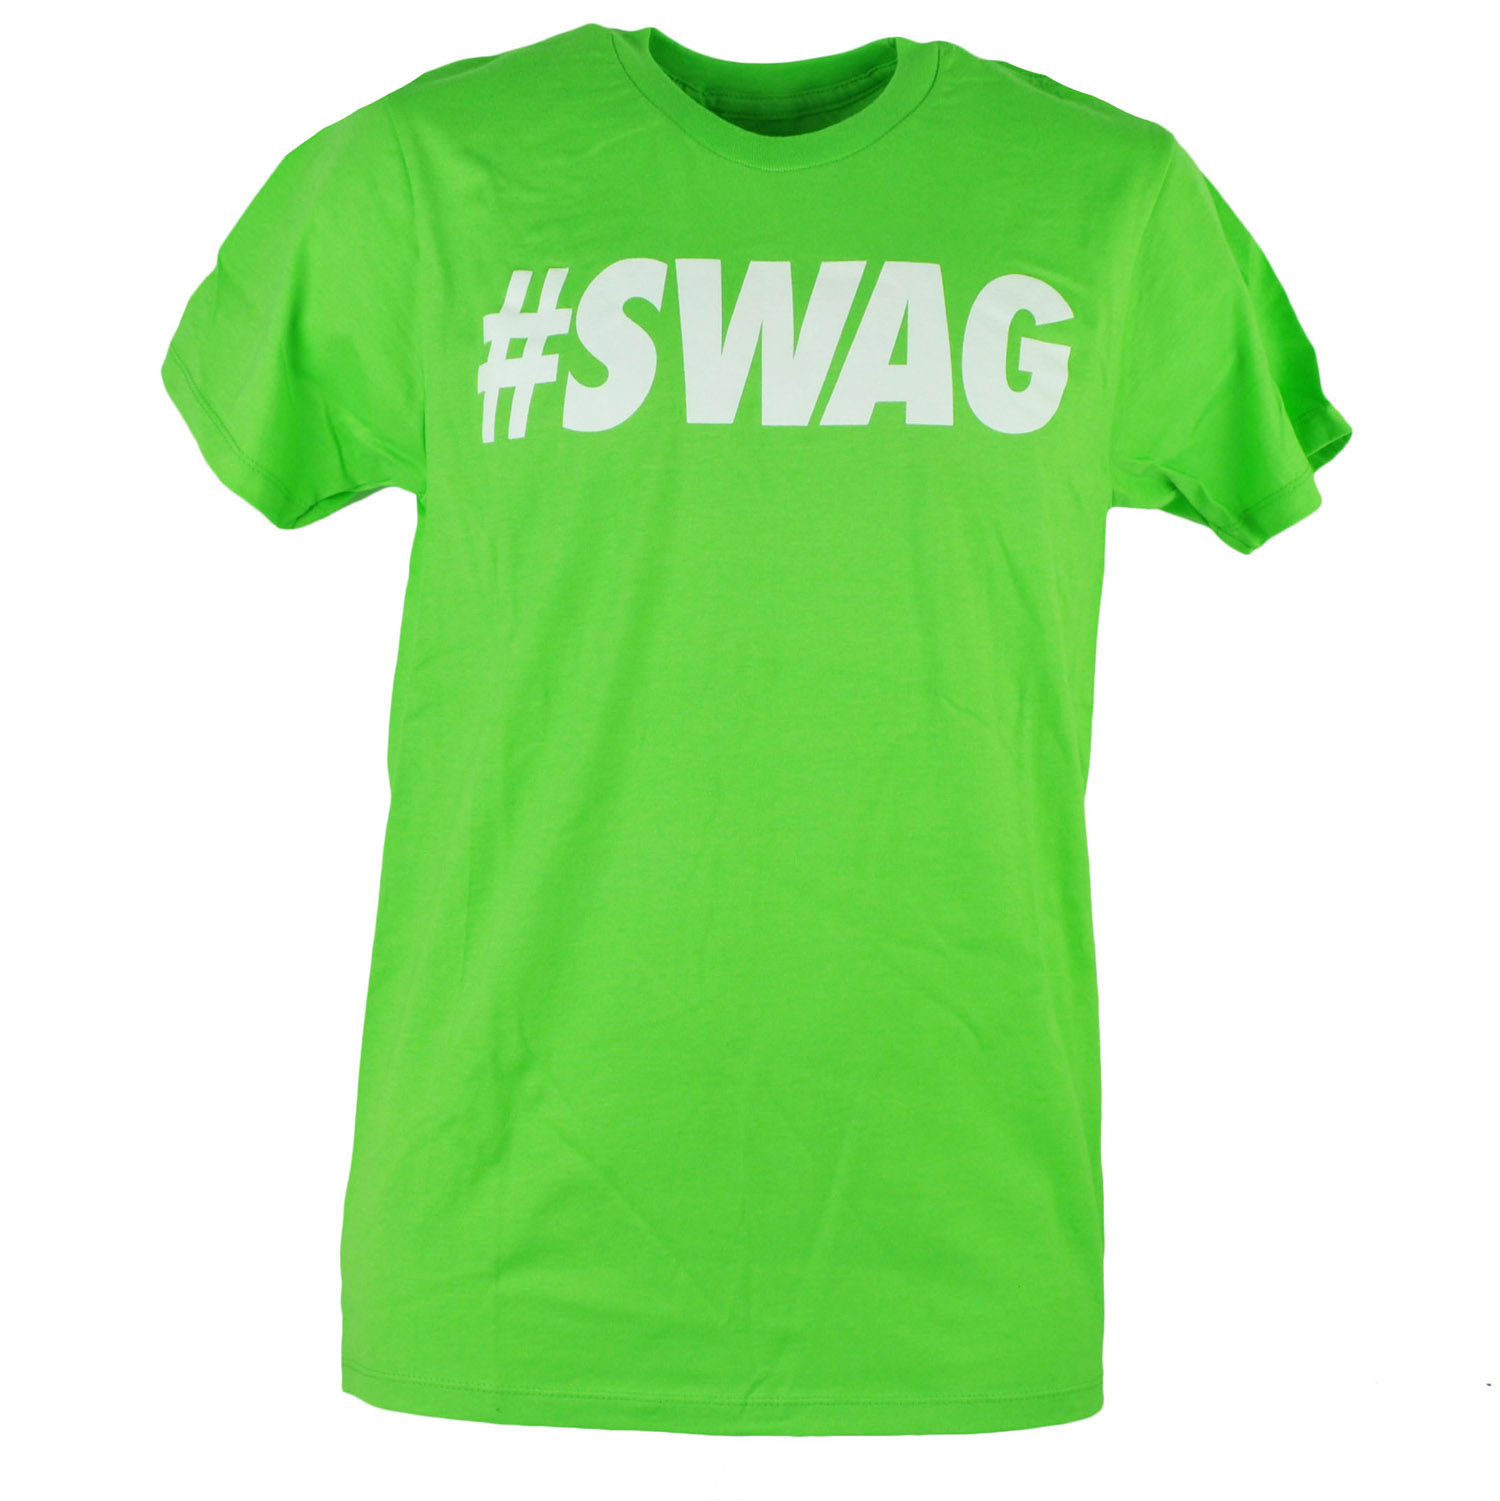 Urban Pipeline #Swag Swag Lime Green Text Retro Mens Adult Tshirt Tee XLarge